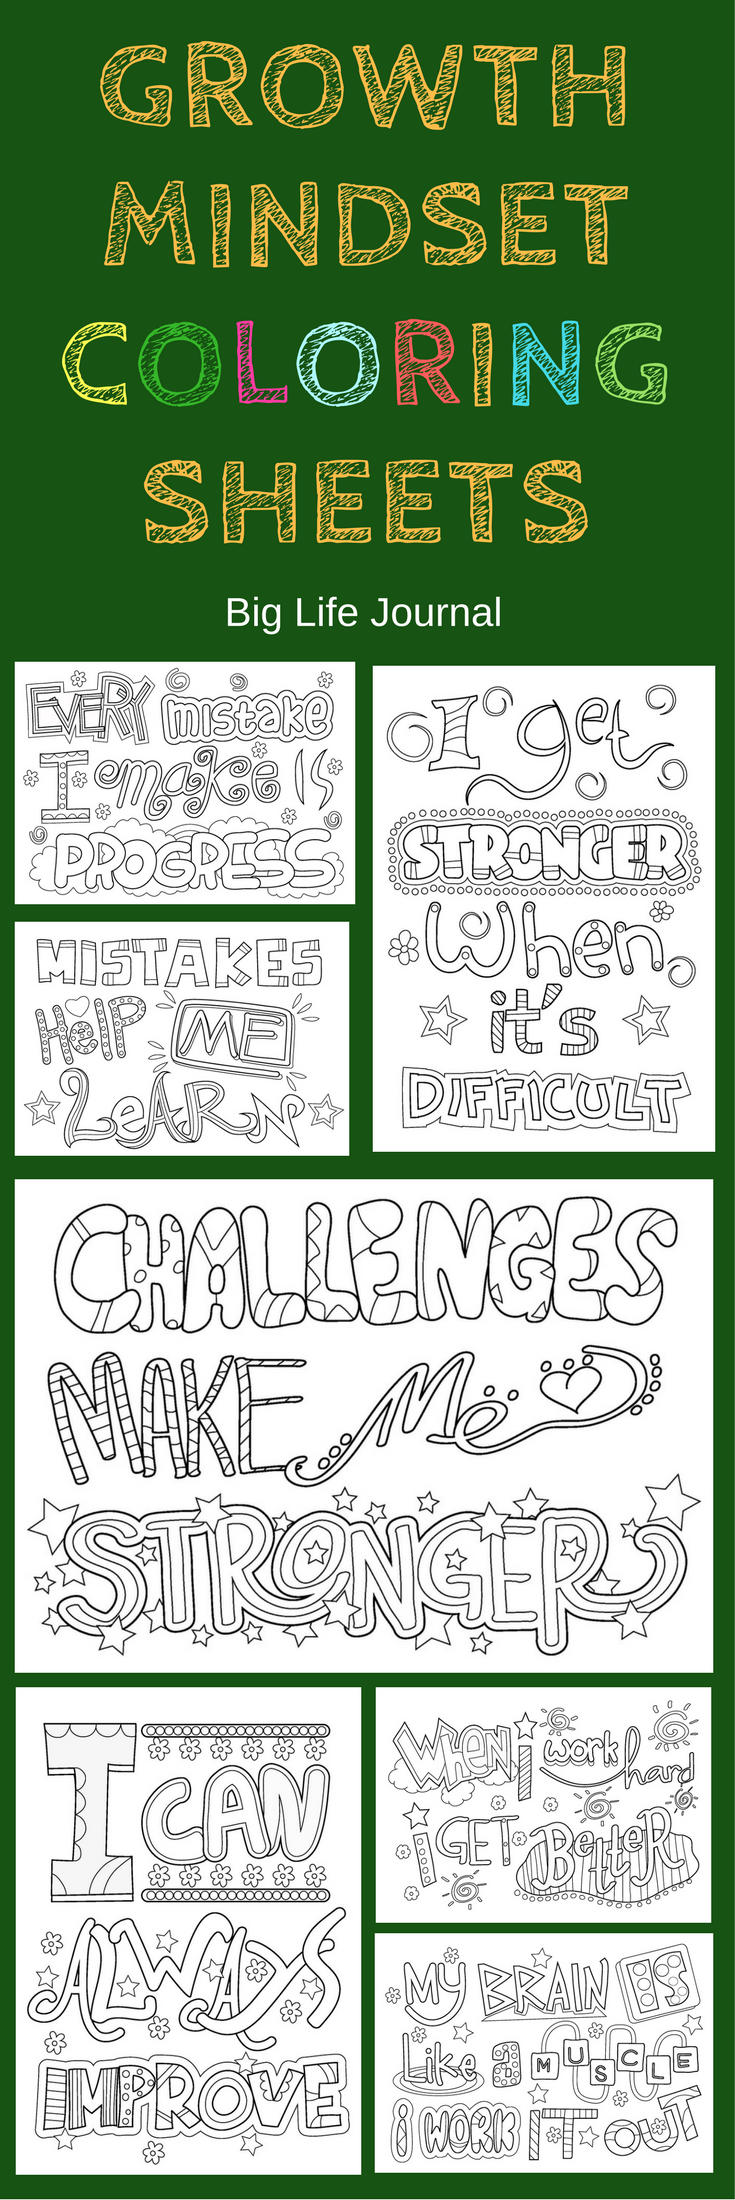 Growth mindset printable coloring sheets for kids. #mathforchildren ...